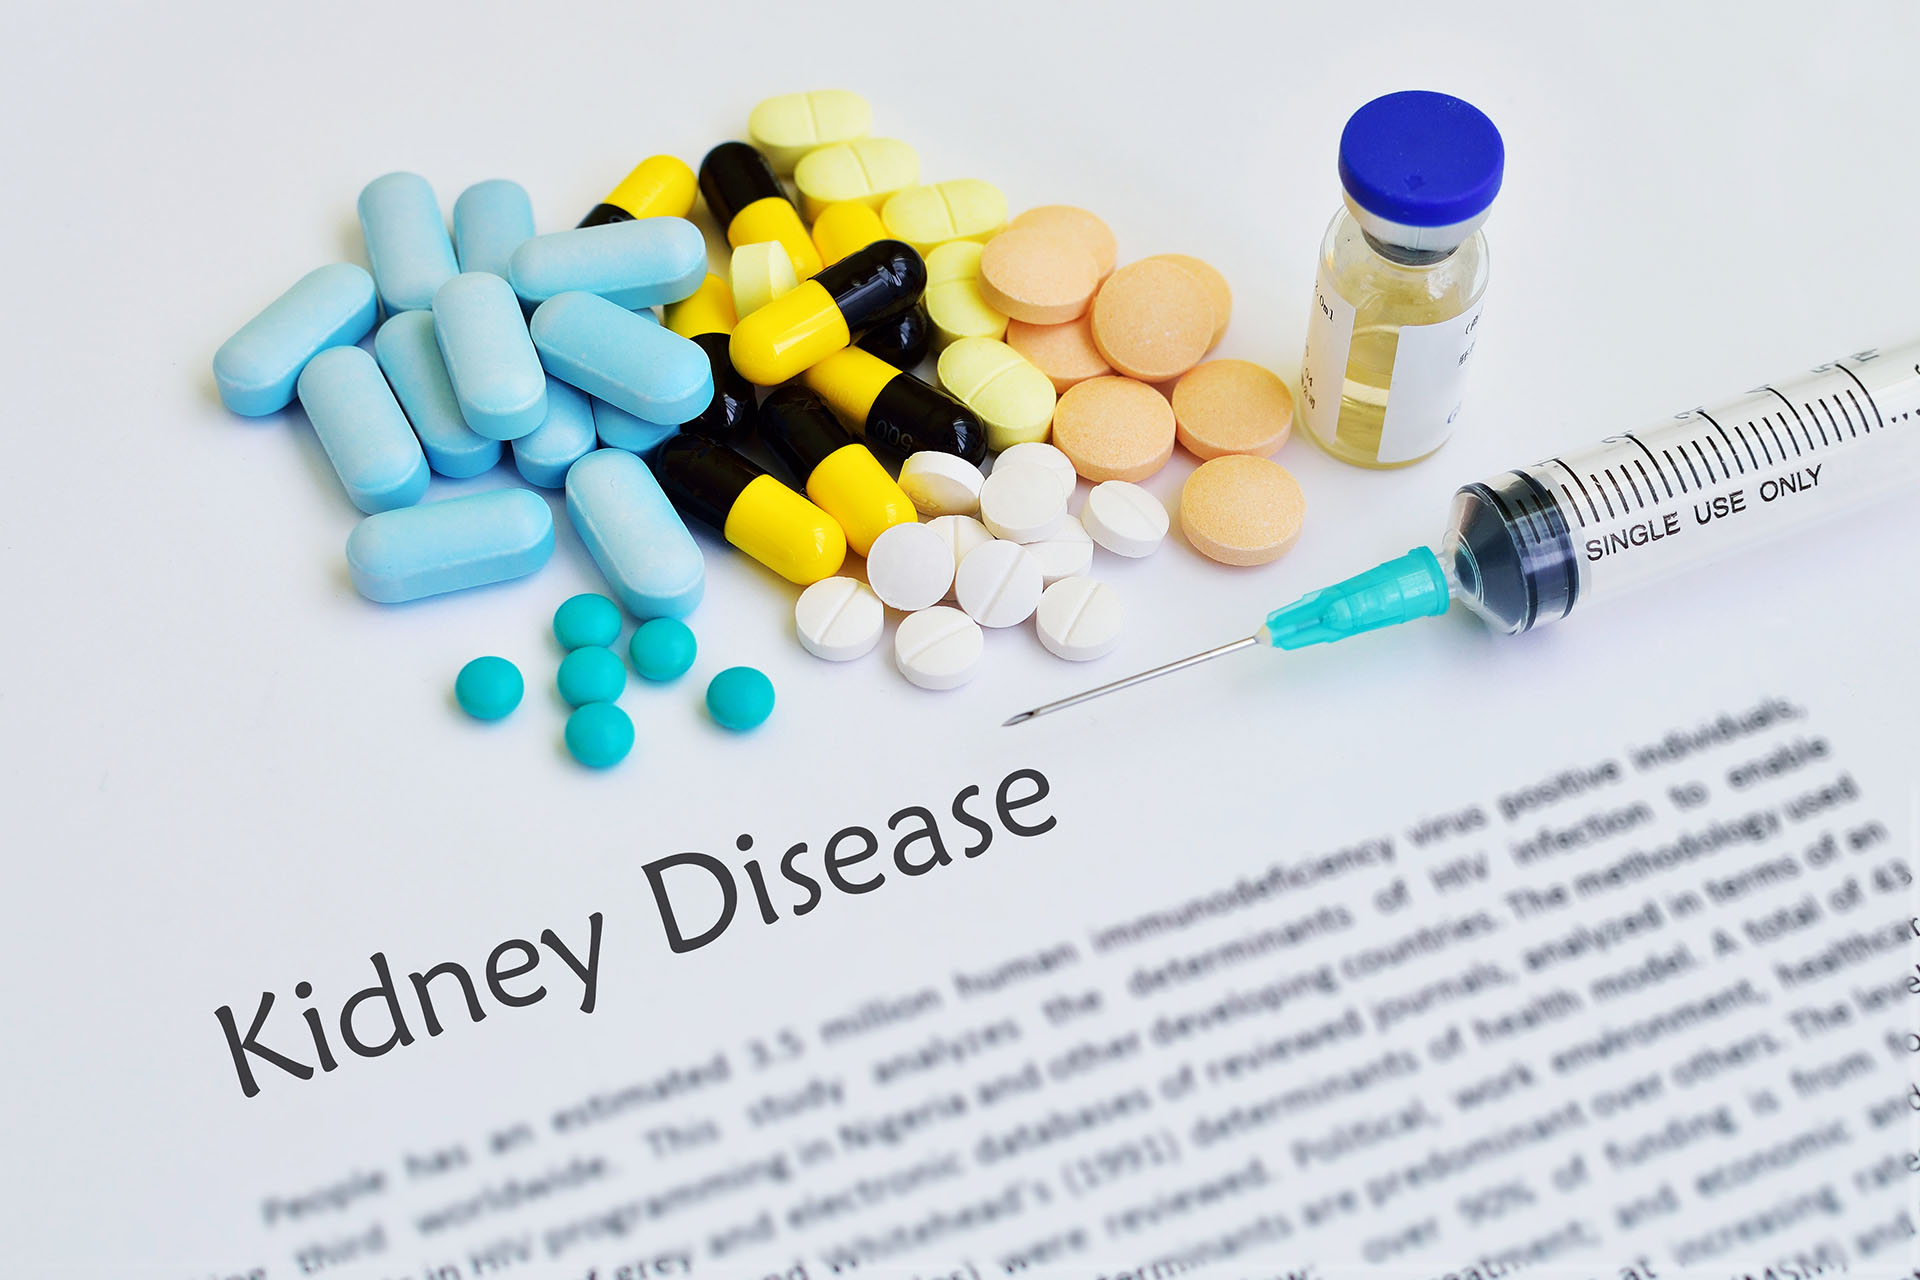 Gateway Nephrology Slider Image - Kidney Disease